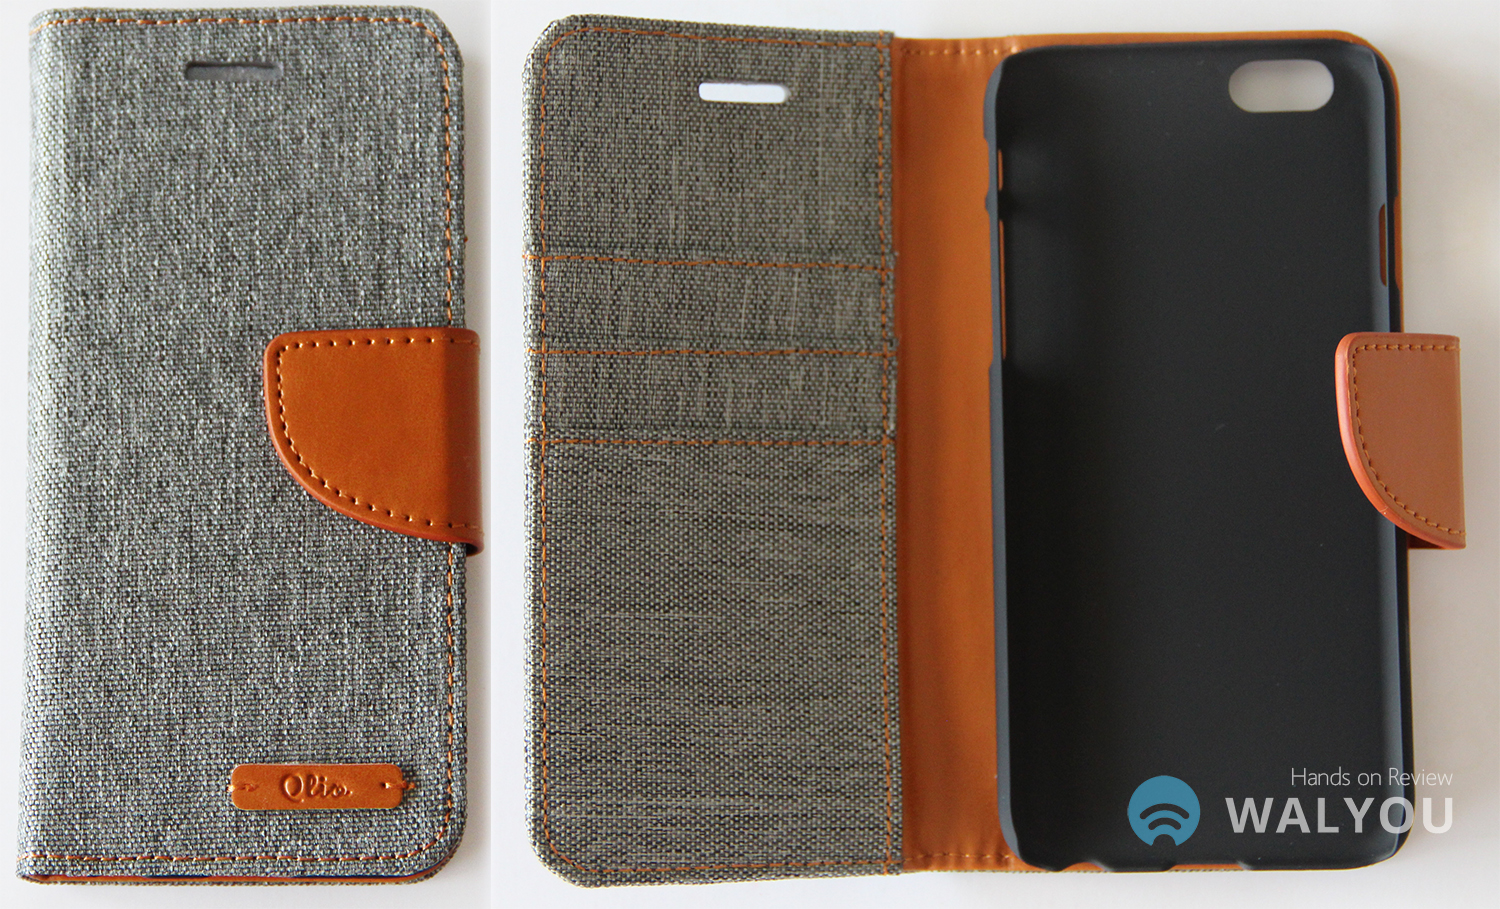 3-in-1 iPhone 6 Wallet Case Qlio